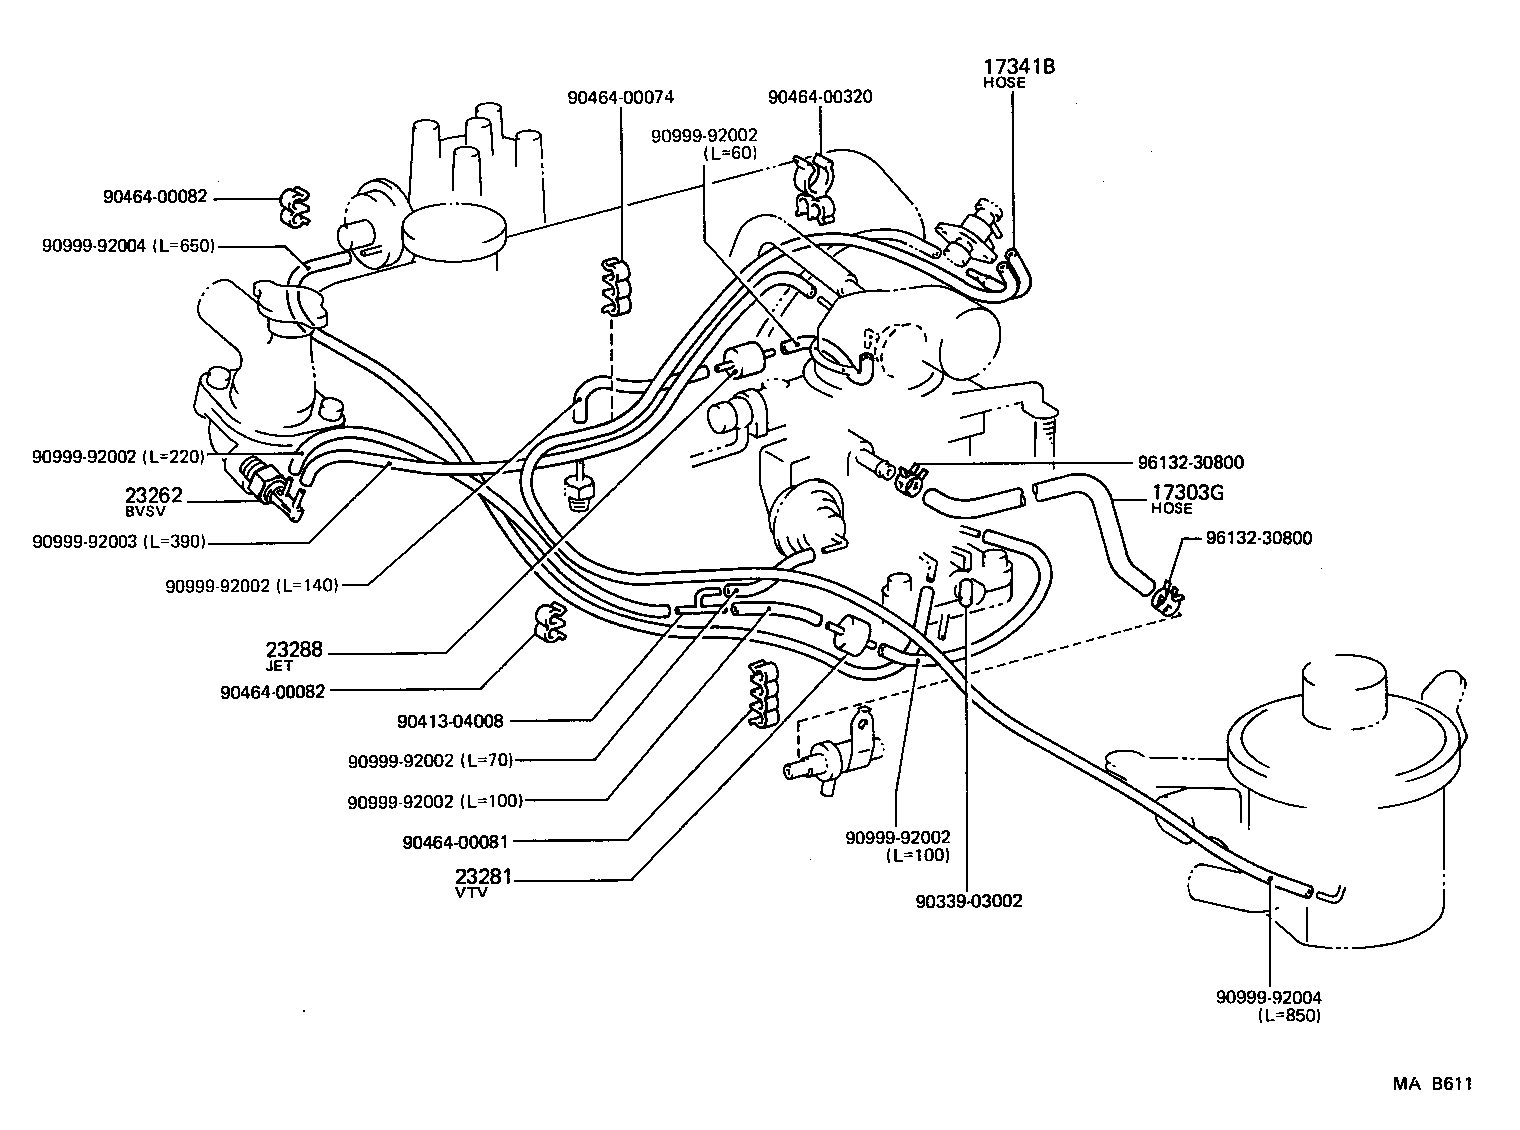 Toyota 5k Engine Diagram Toyota 5k Engine Manual Wiring